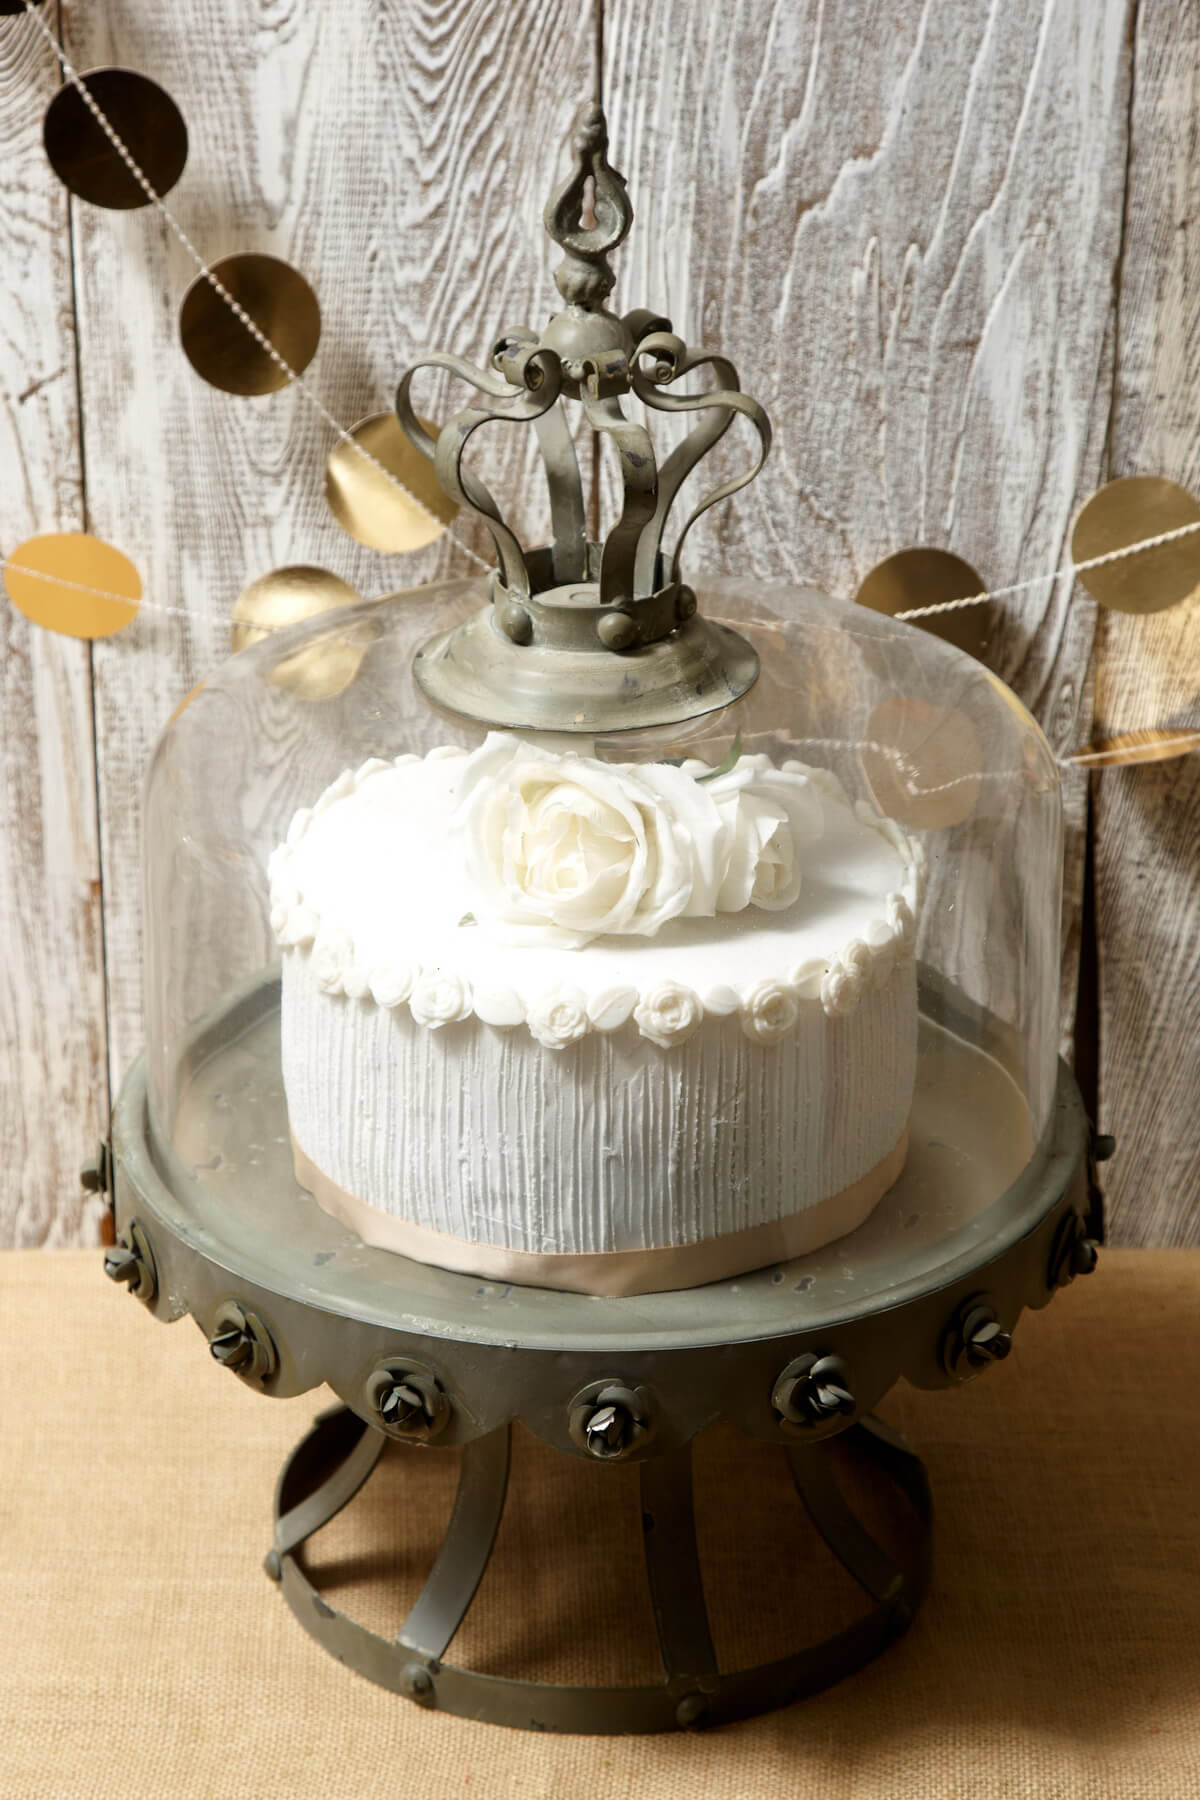 & Glass Dome Covered Zinc Rustic Cake Stand 13in